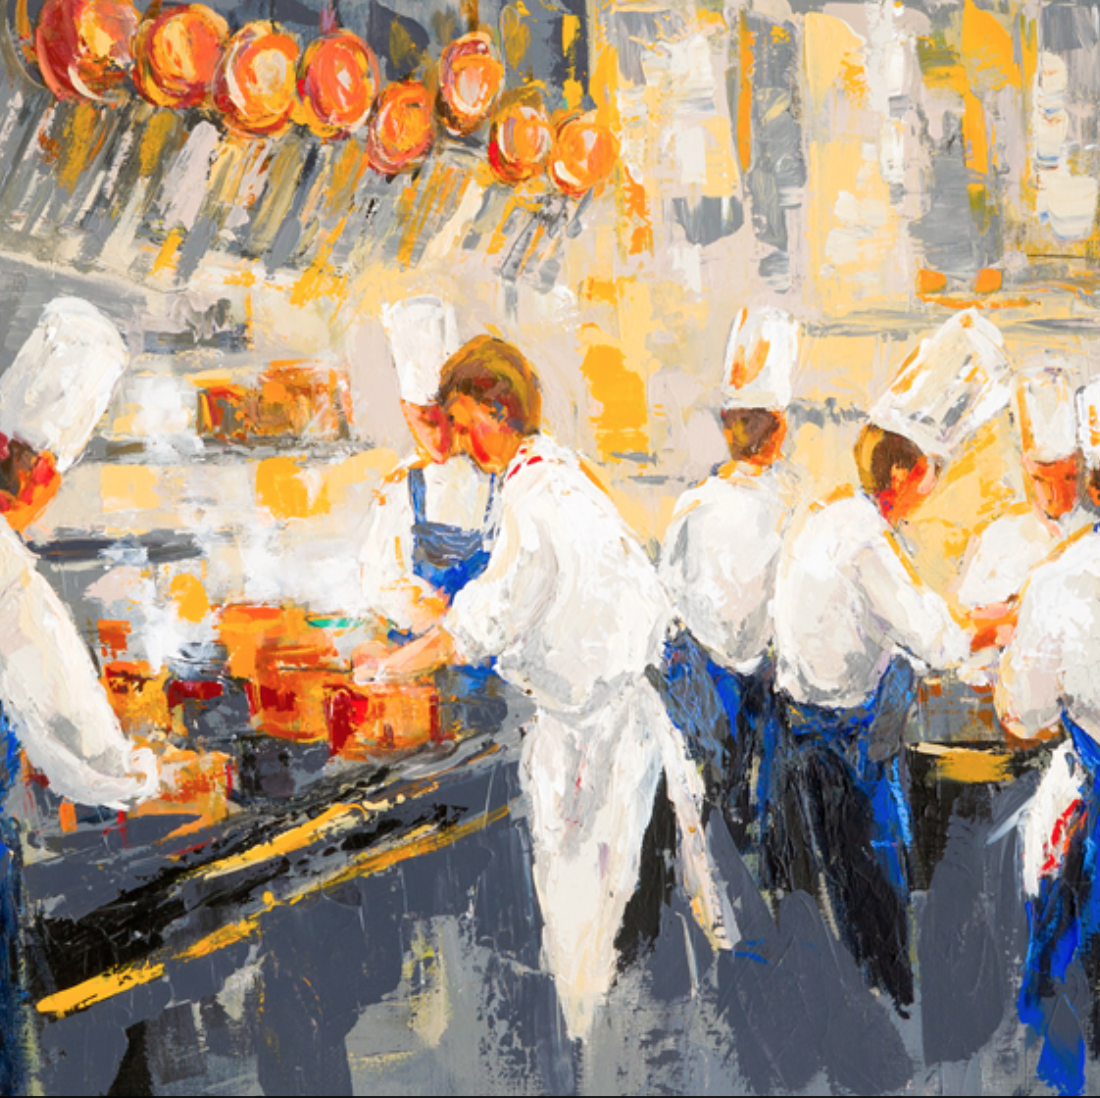 painter to cook up a storm at new french restaurant